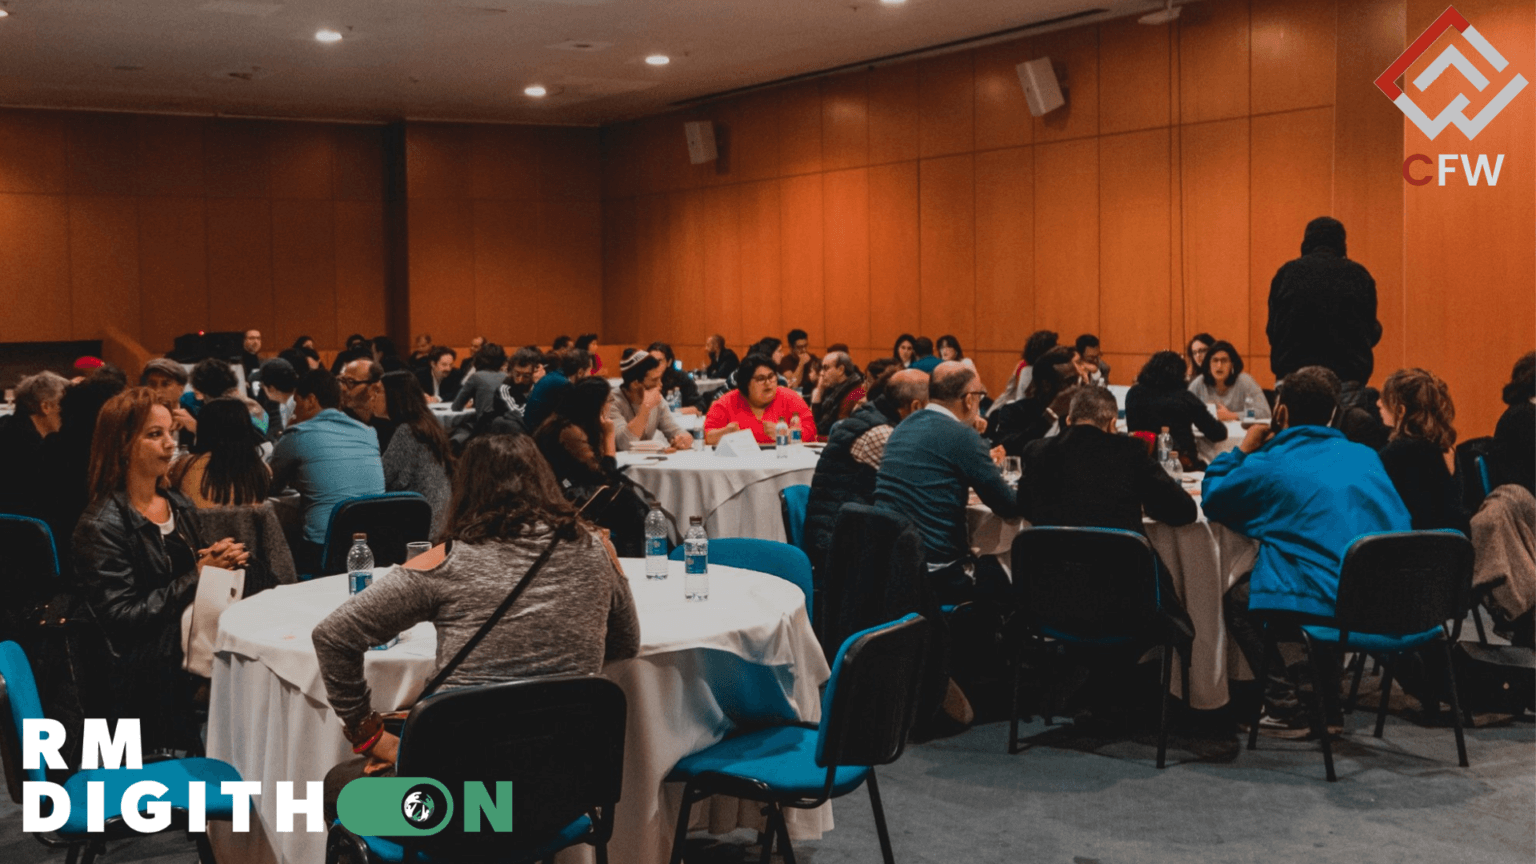 EVENT : Resources Mobilisation Digithon - RMD 2021